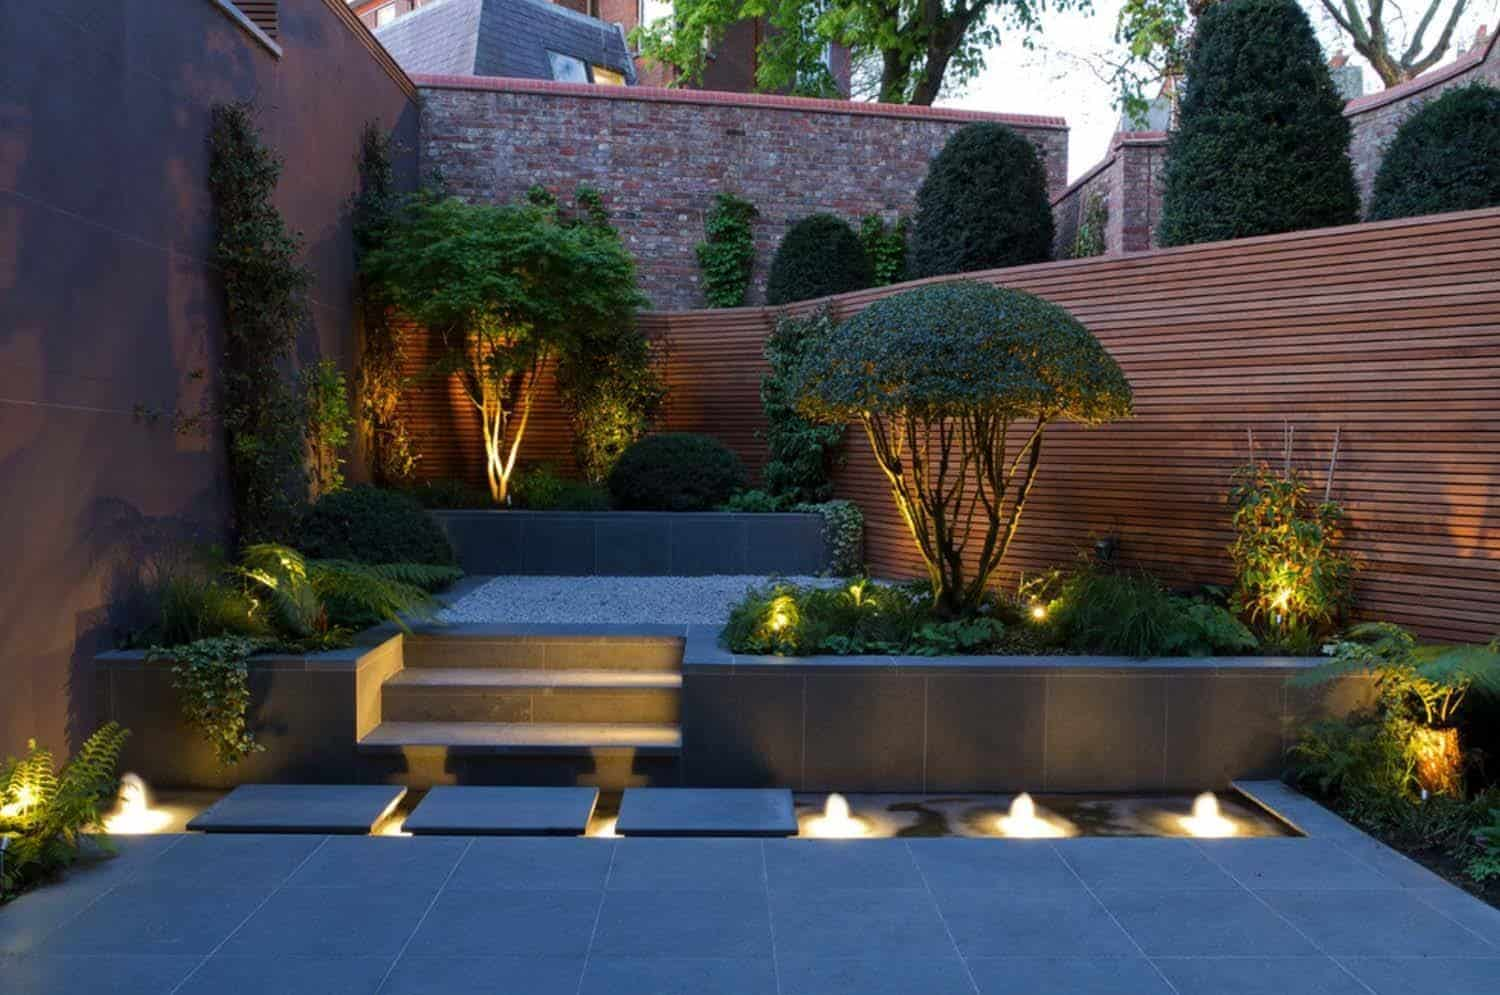 Modern Outdoor Patio Design 16 1 Kindesign